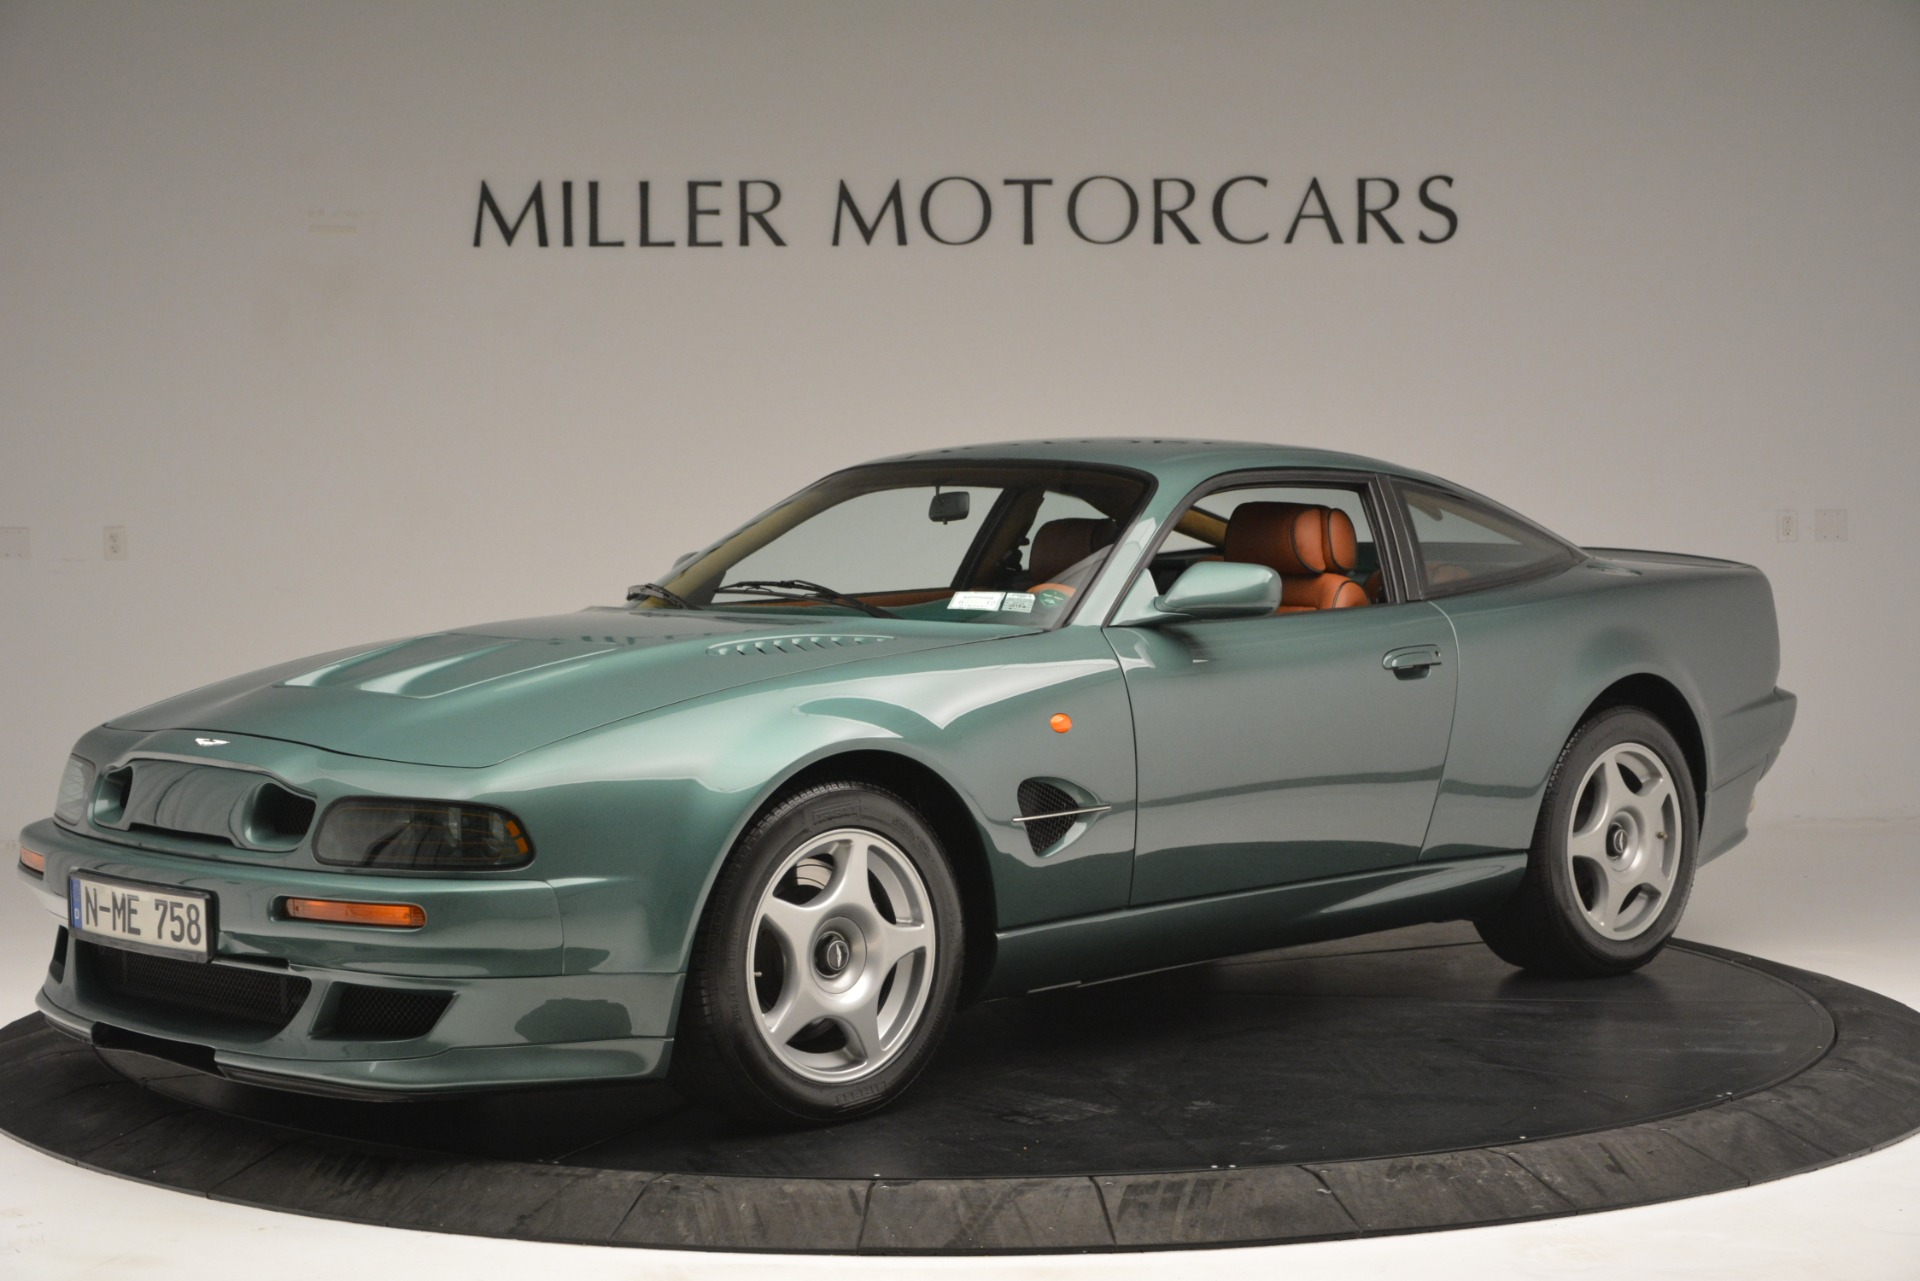 Used 1999 Aston Martin V8 Vantage Le Mans V600 Coupe for sale $550,000 at Bugatti of Greenwich in Greenwich CT 06830 1